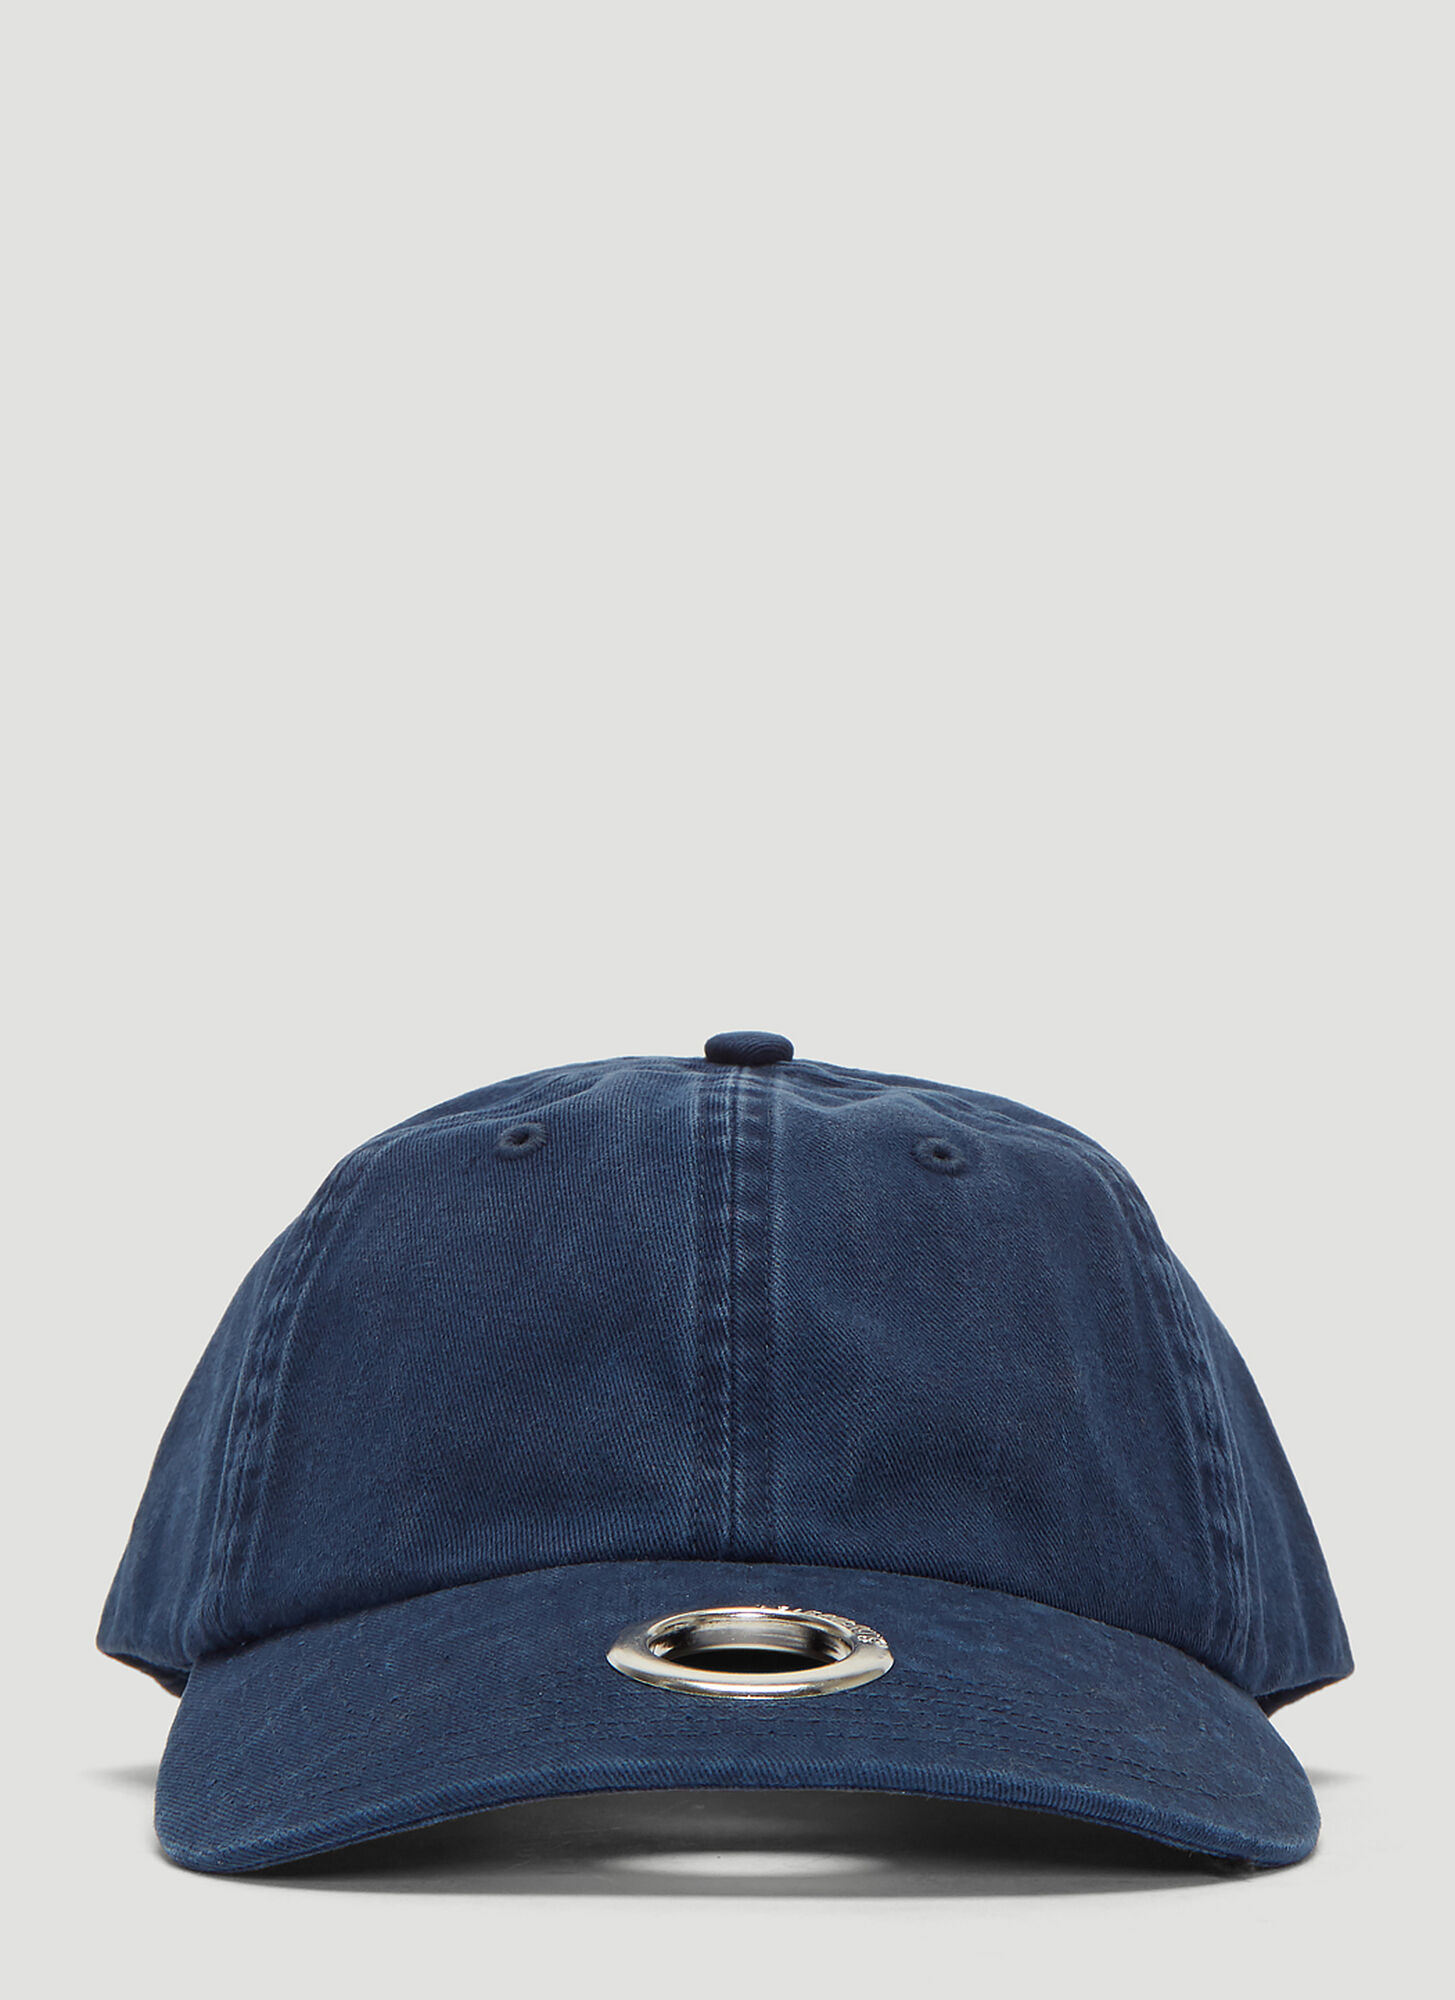 Vetements X Reebok Ring Cap in Blue